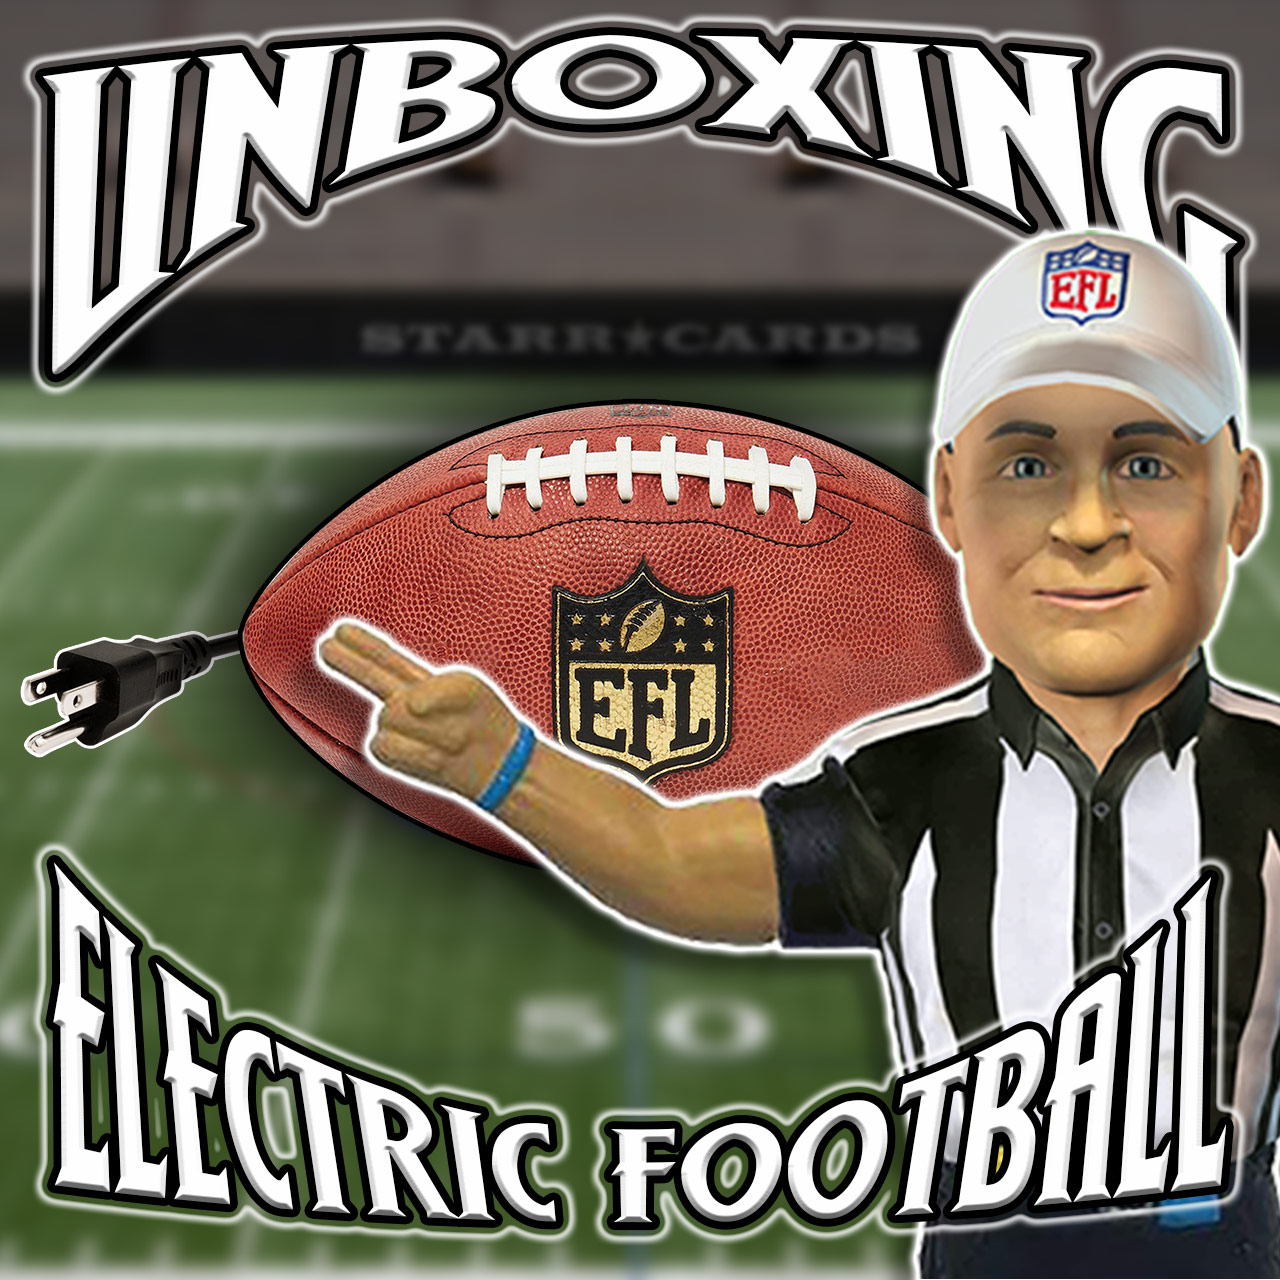 Unboxing Electric Football